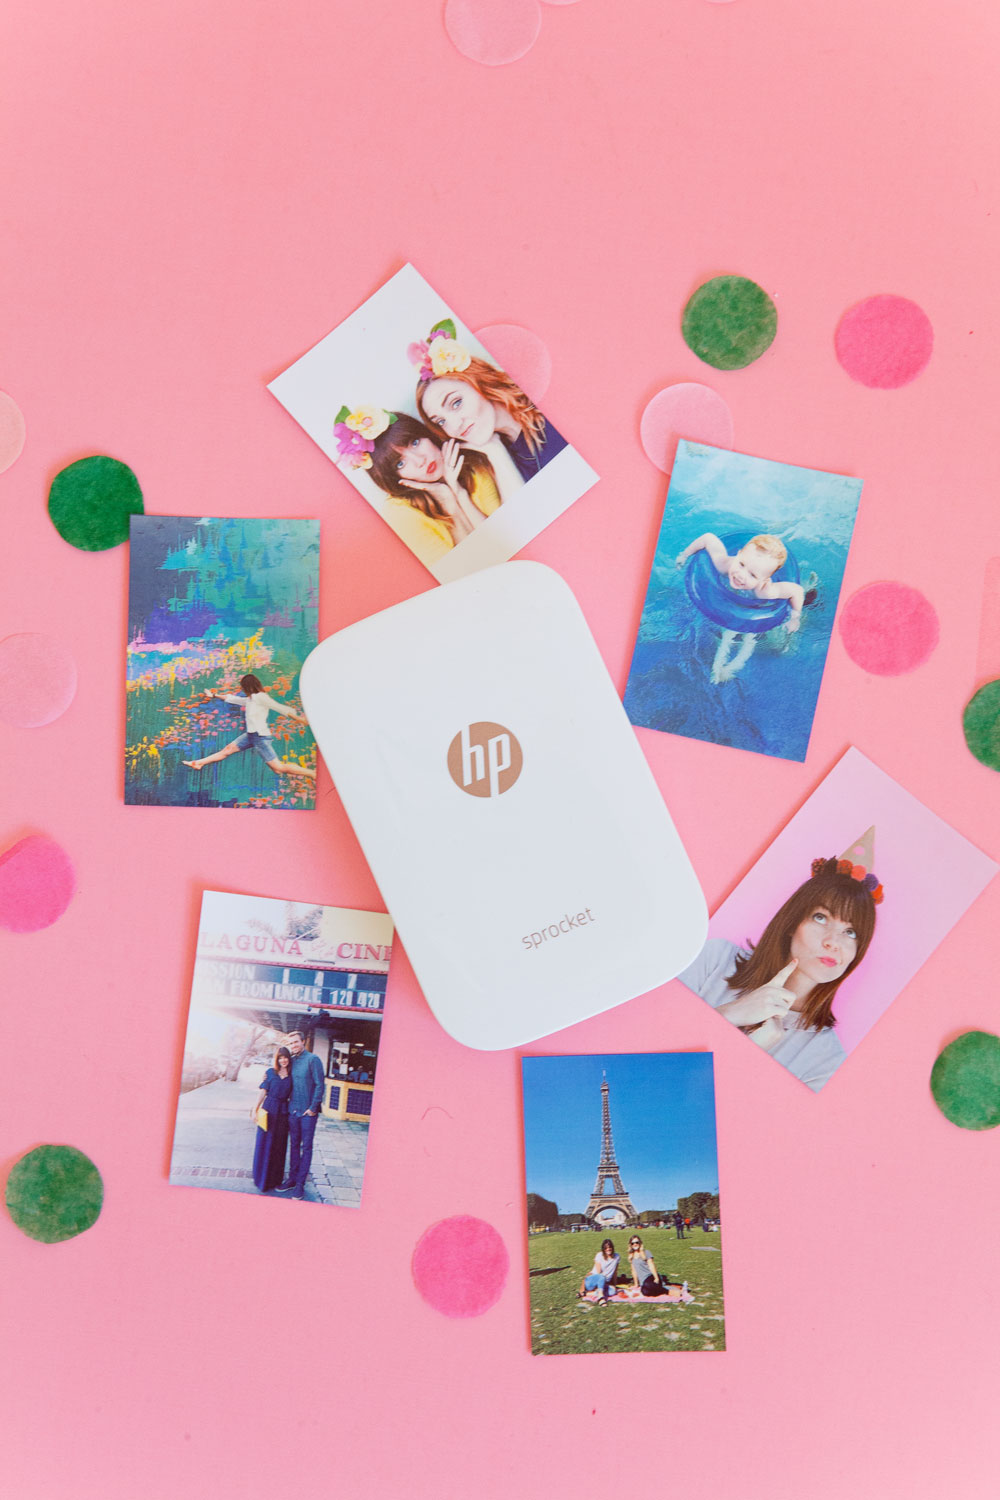 HP-Sprocket-picture-printer